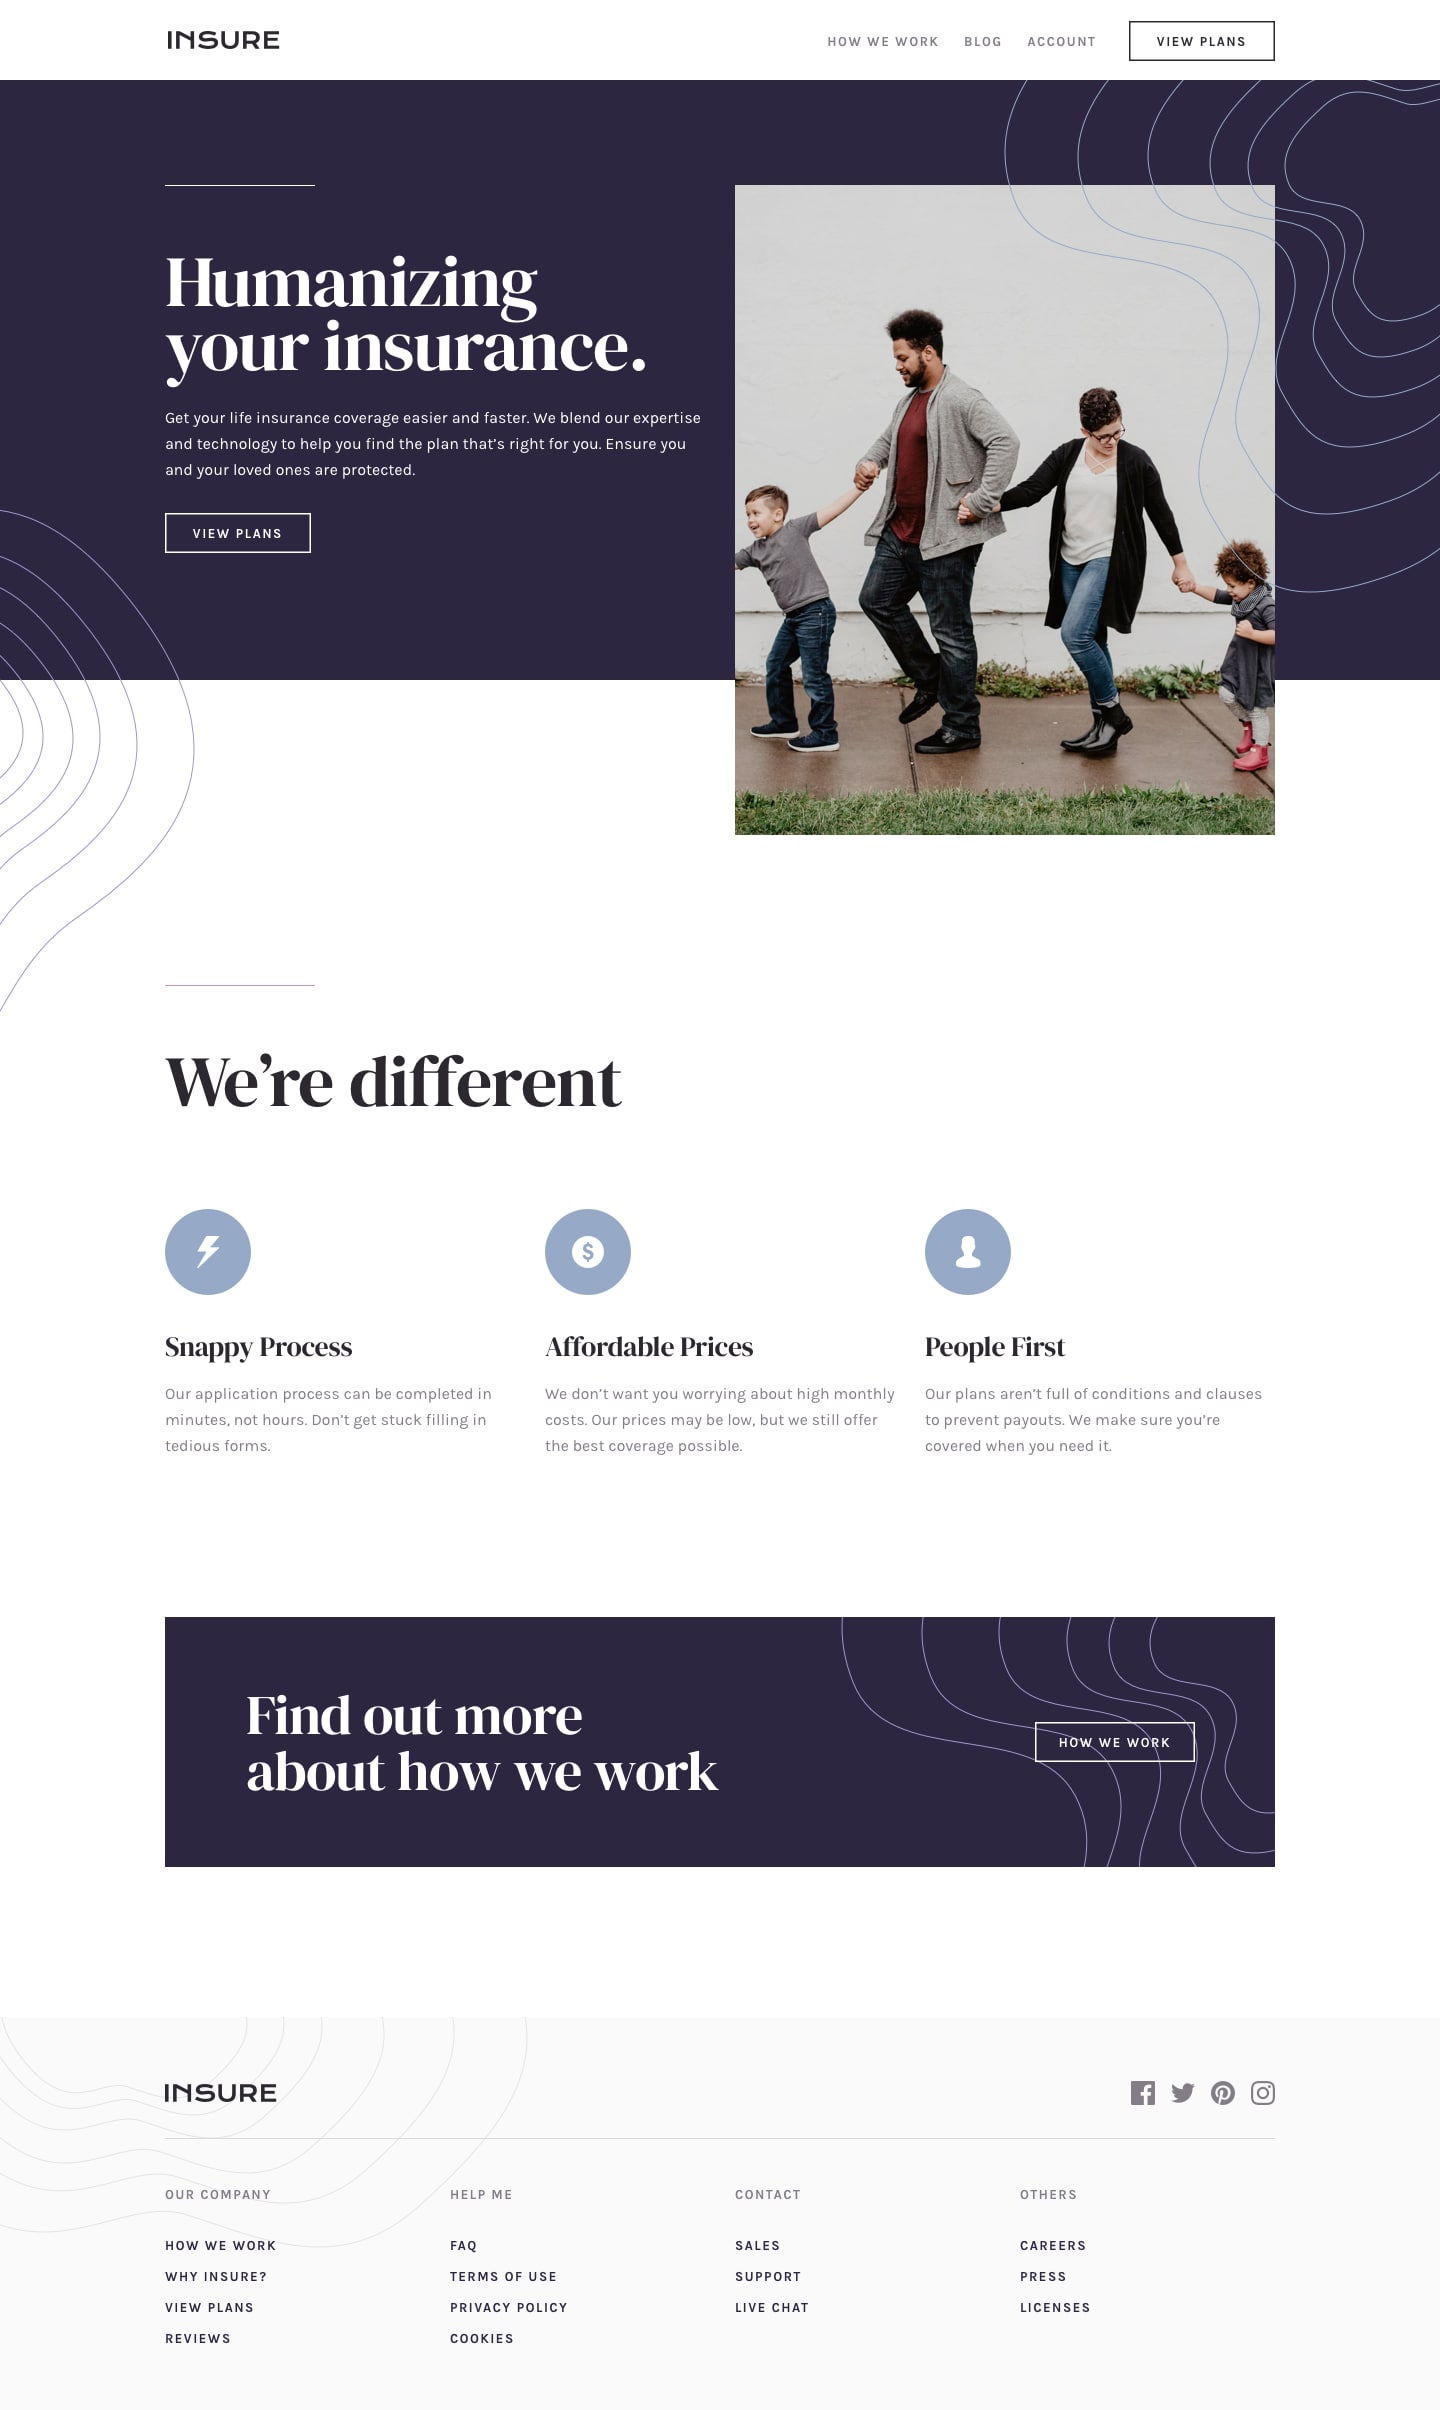 Design preview for Insure landing page coding challenge